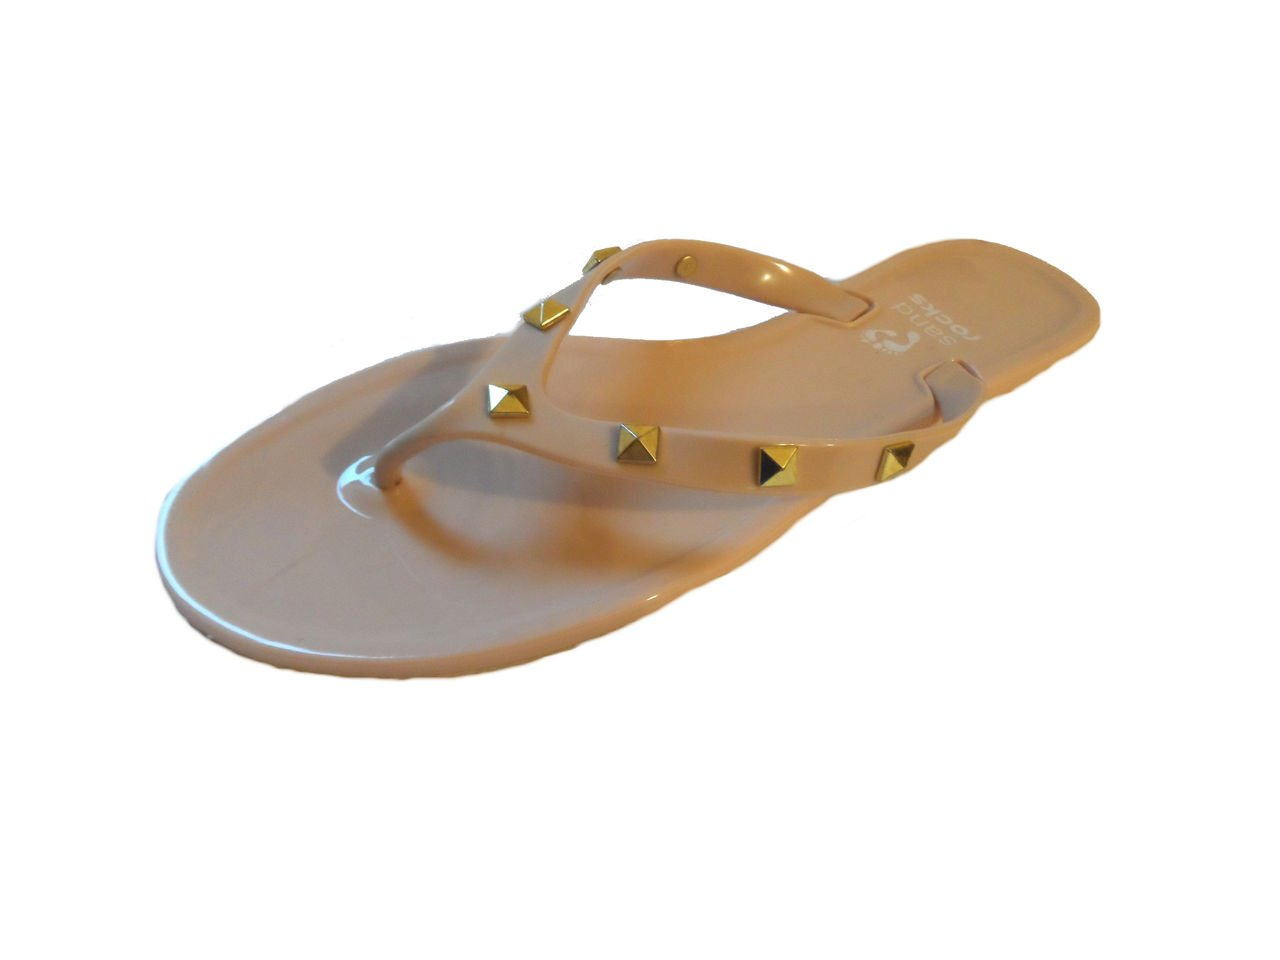 Sand Rocks Ladies Girls Stud Jewel Jelly Flip Flop Sandals Coral Black Nude  Size 4 5 6 7: Amazon.co.uk: Shoes & Bags